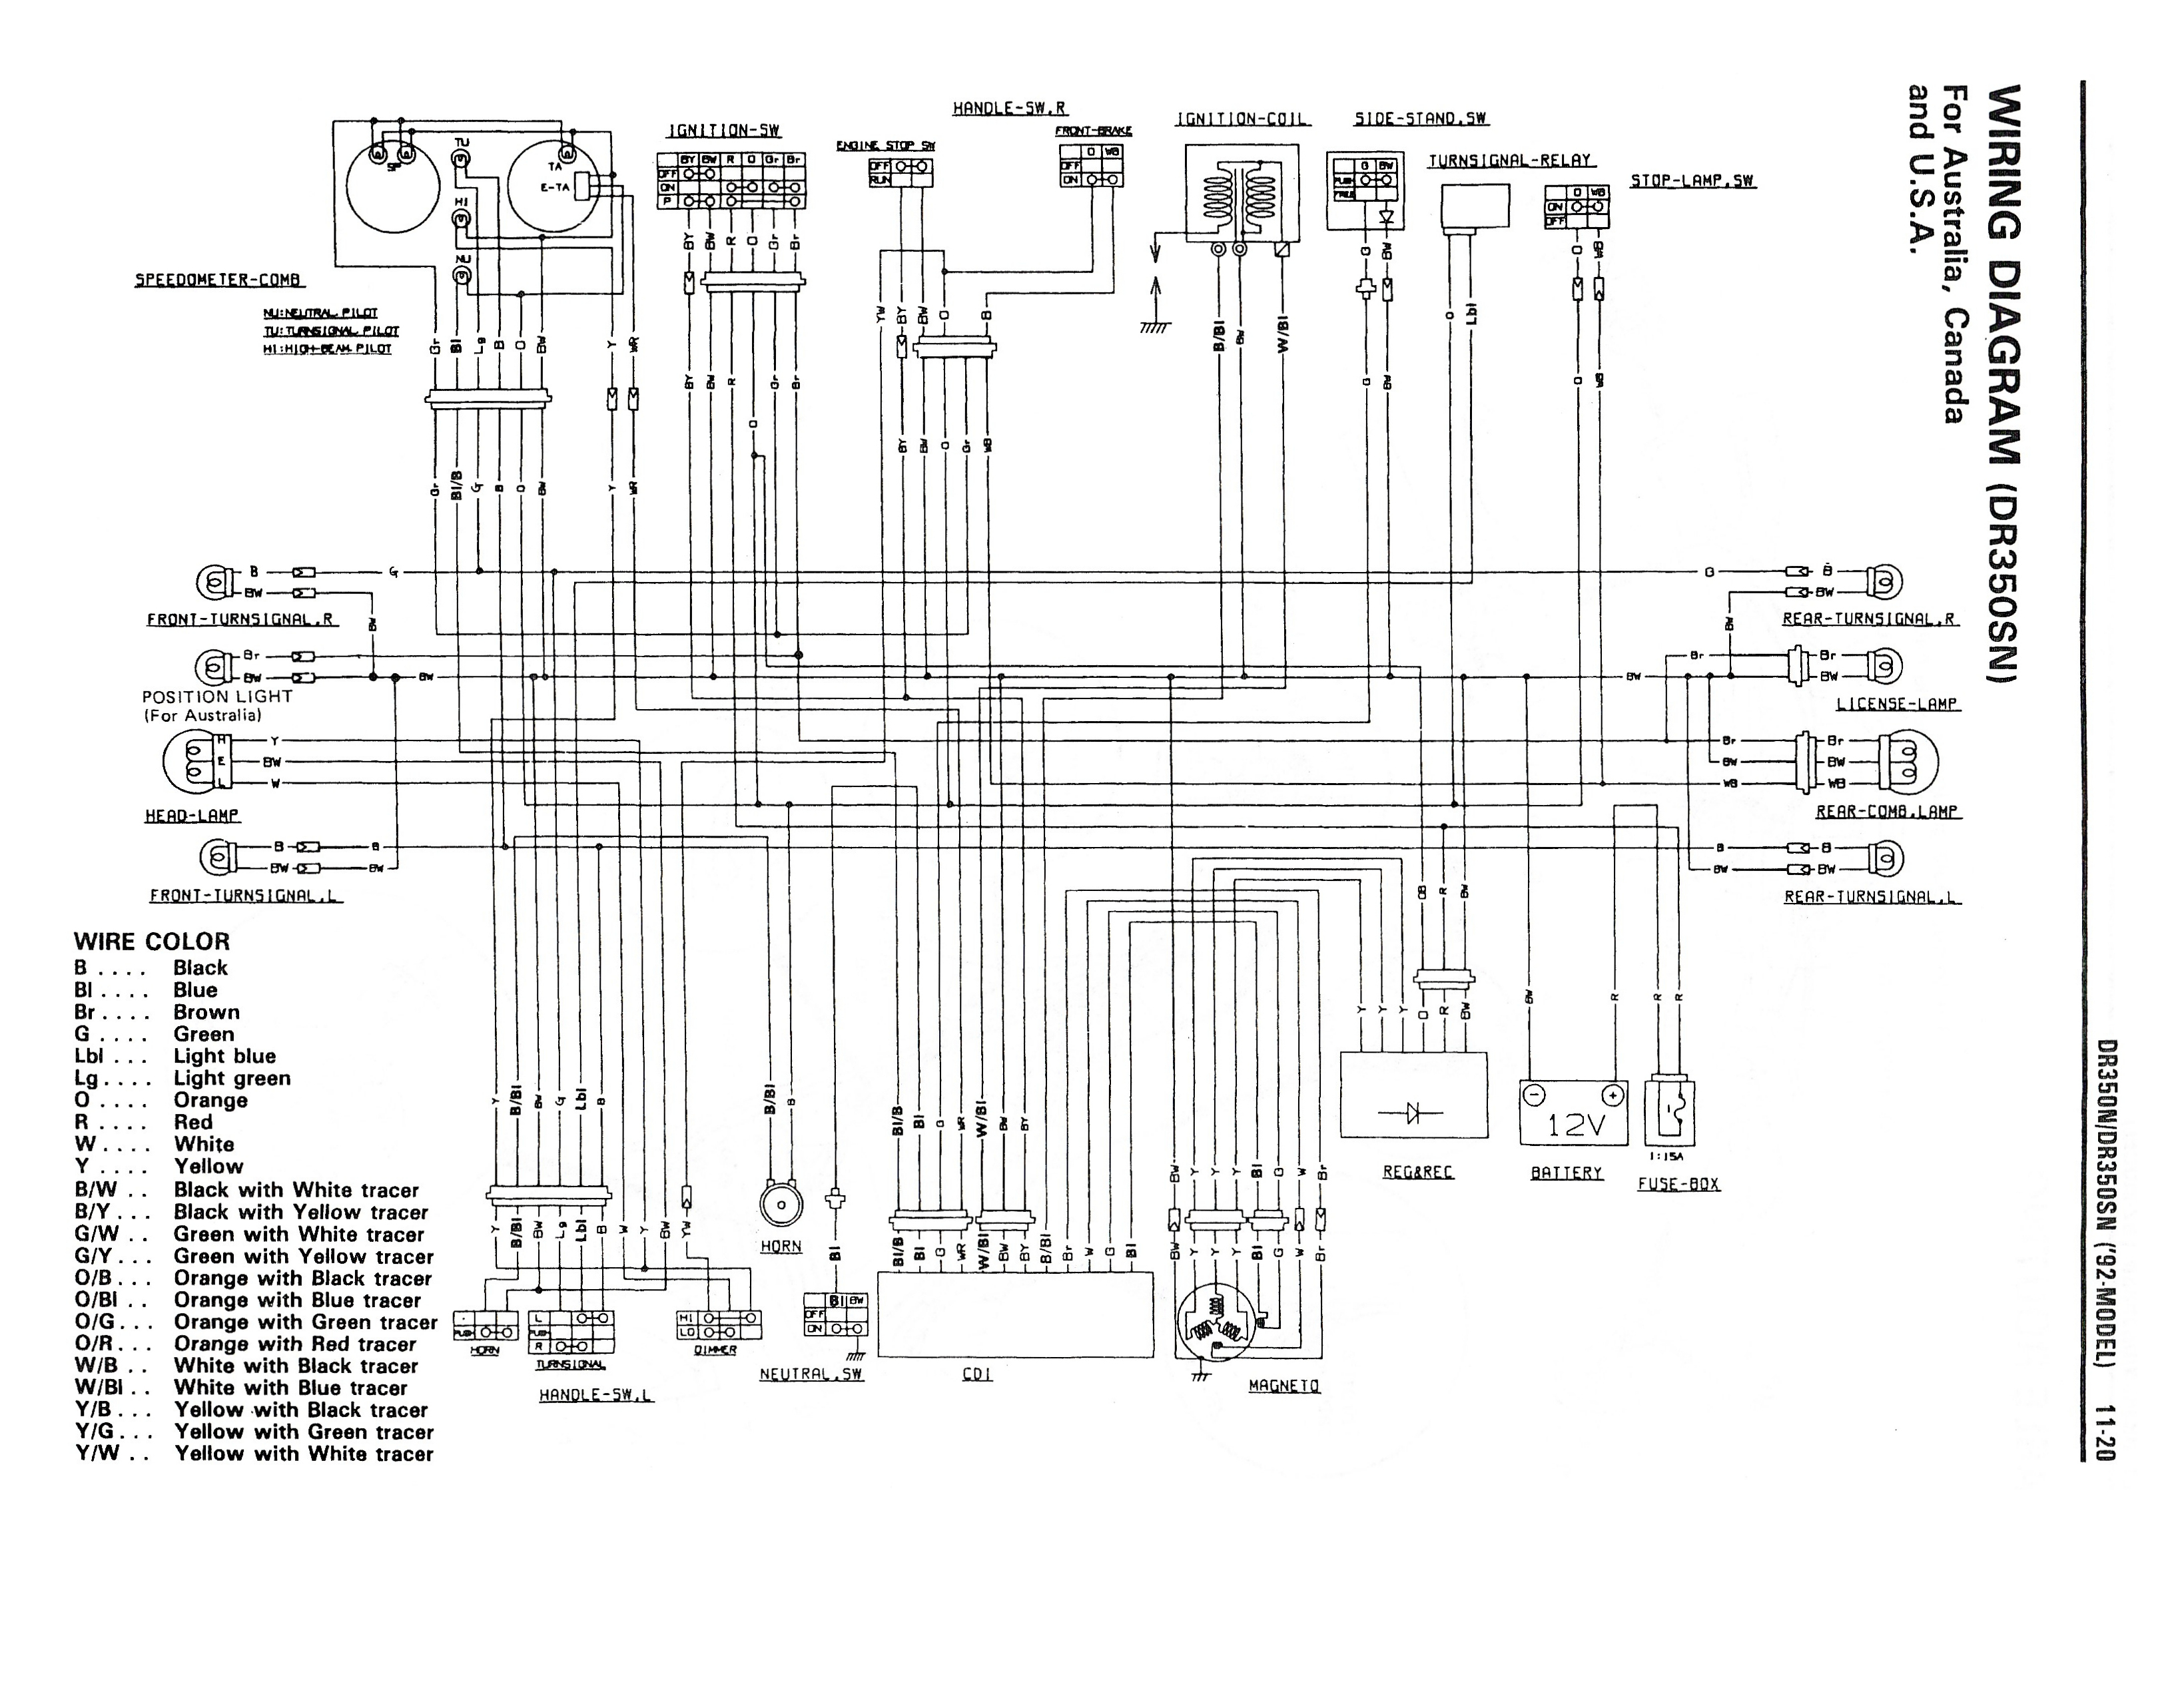 wiring diagram for the dr350 s (1992 and later models australia on Raptor 350 Wiring Diagram for wiring diagram for the dr350 s (1992 and later models australia, canada, at suzuki dr350 wiring diagram